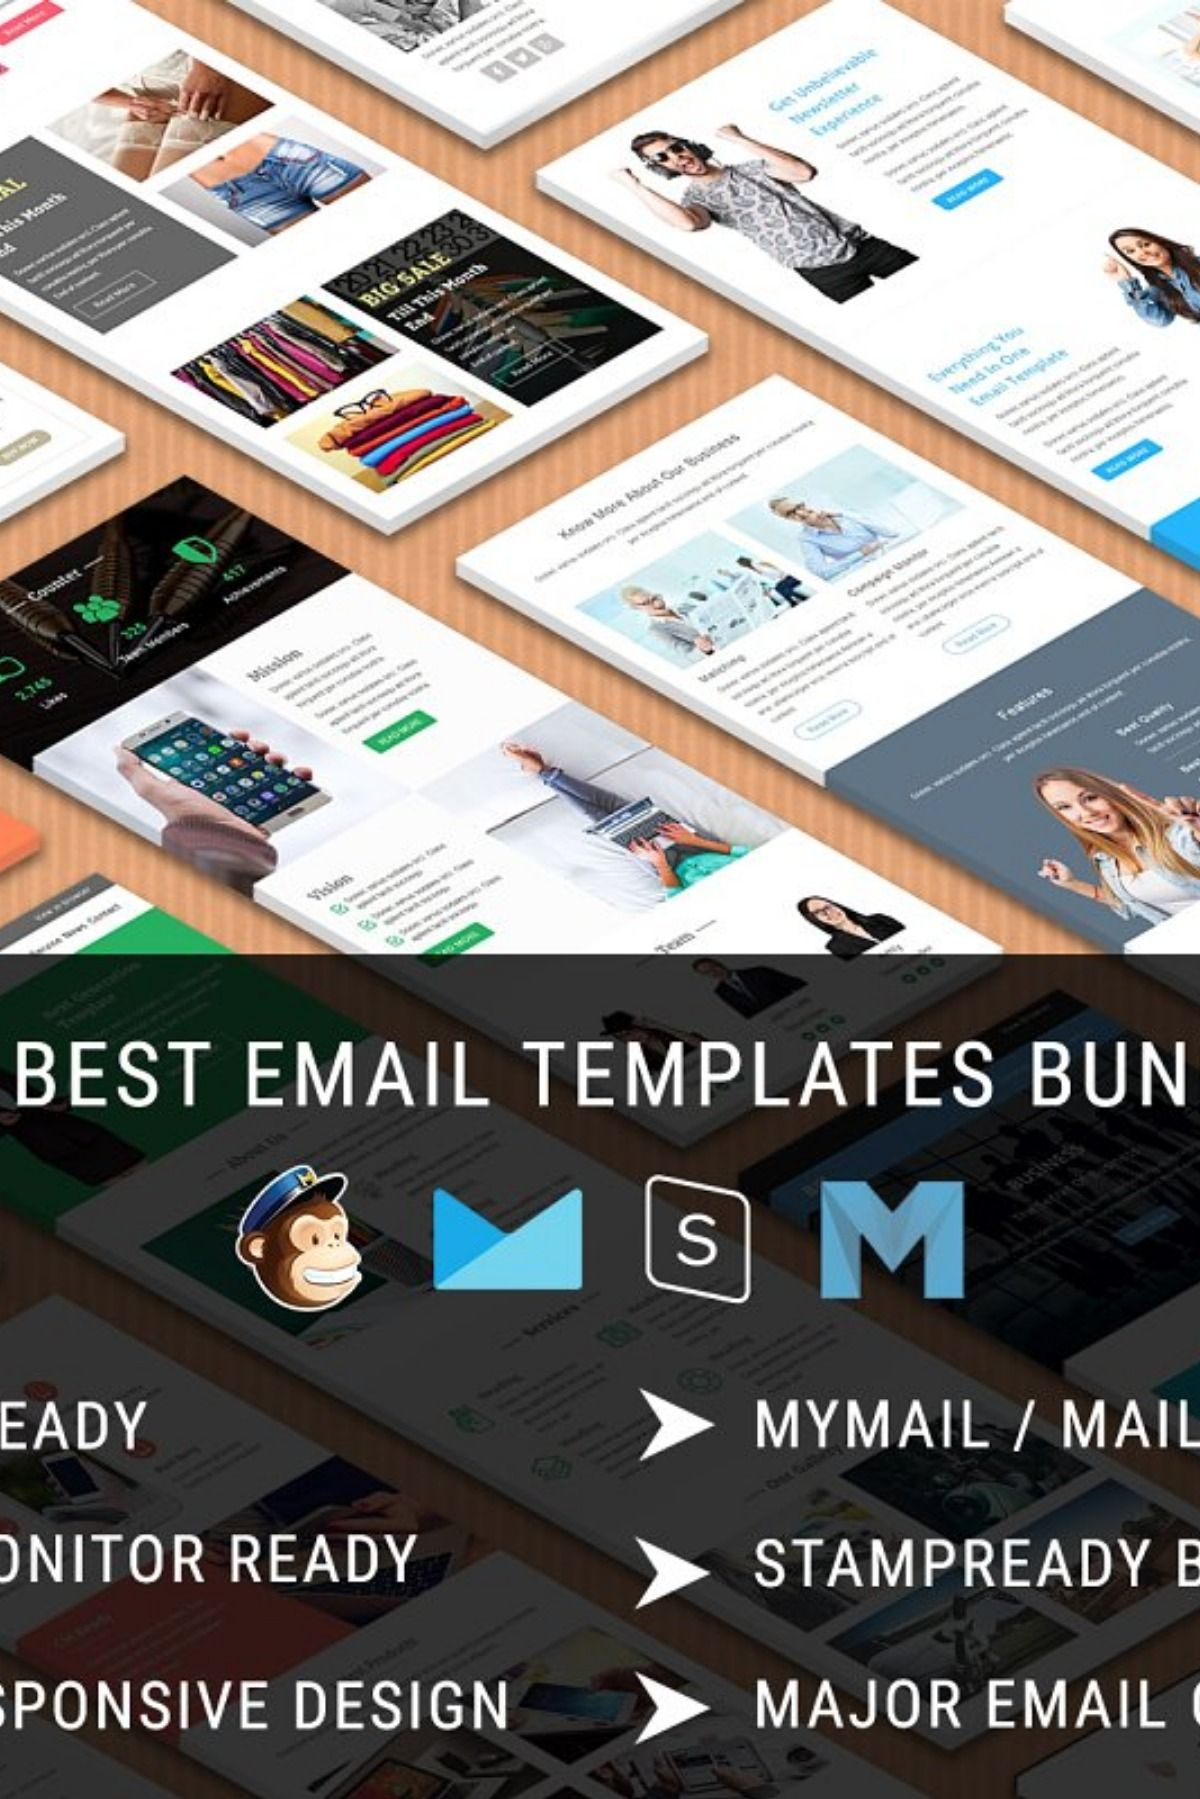 20 Best Email Templates Bundle 10 Email Templates Best Email